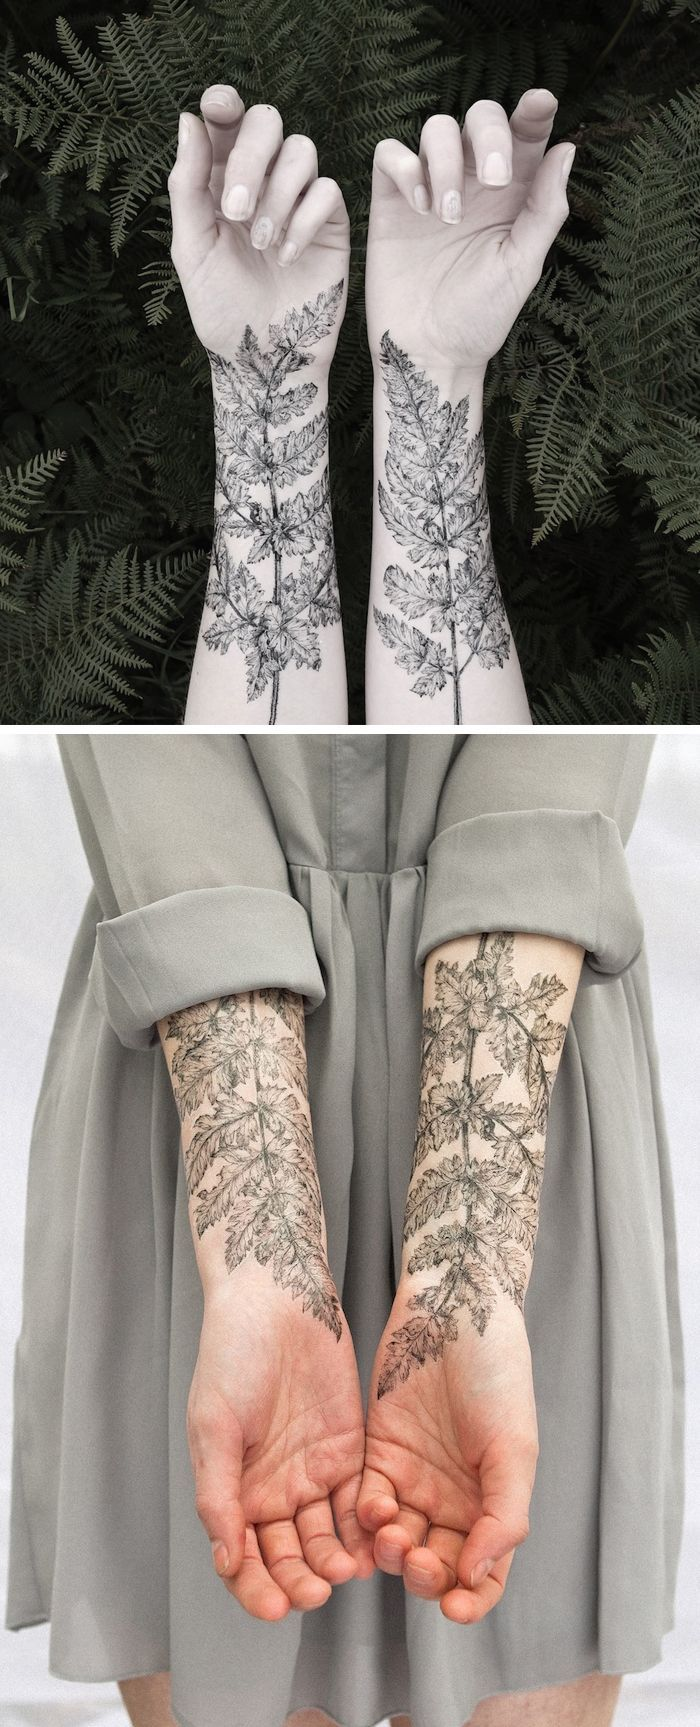 Fern and crystals temporary tattoos